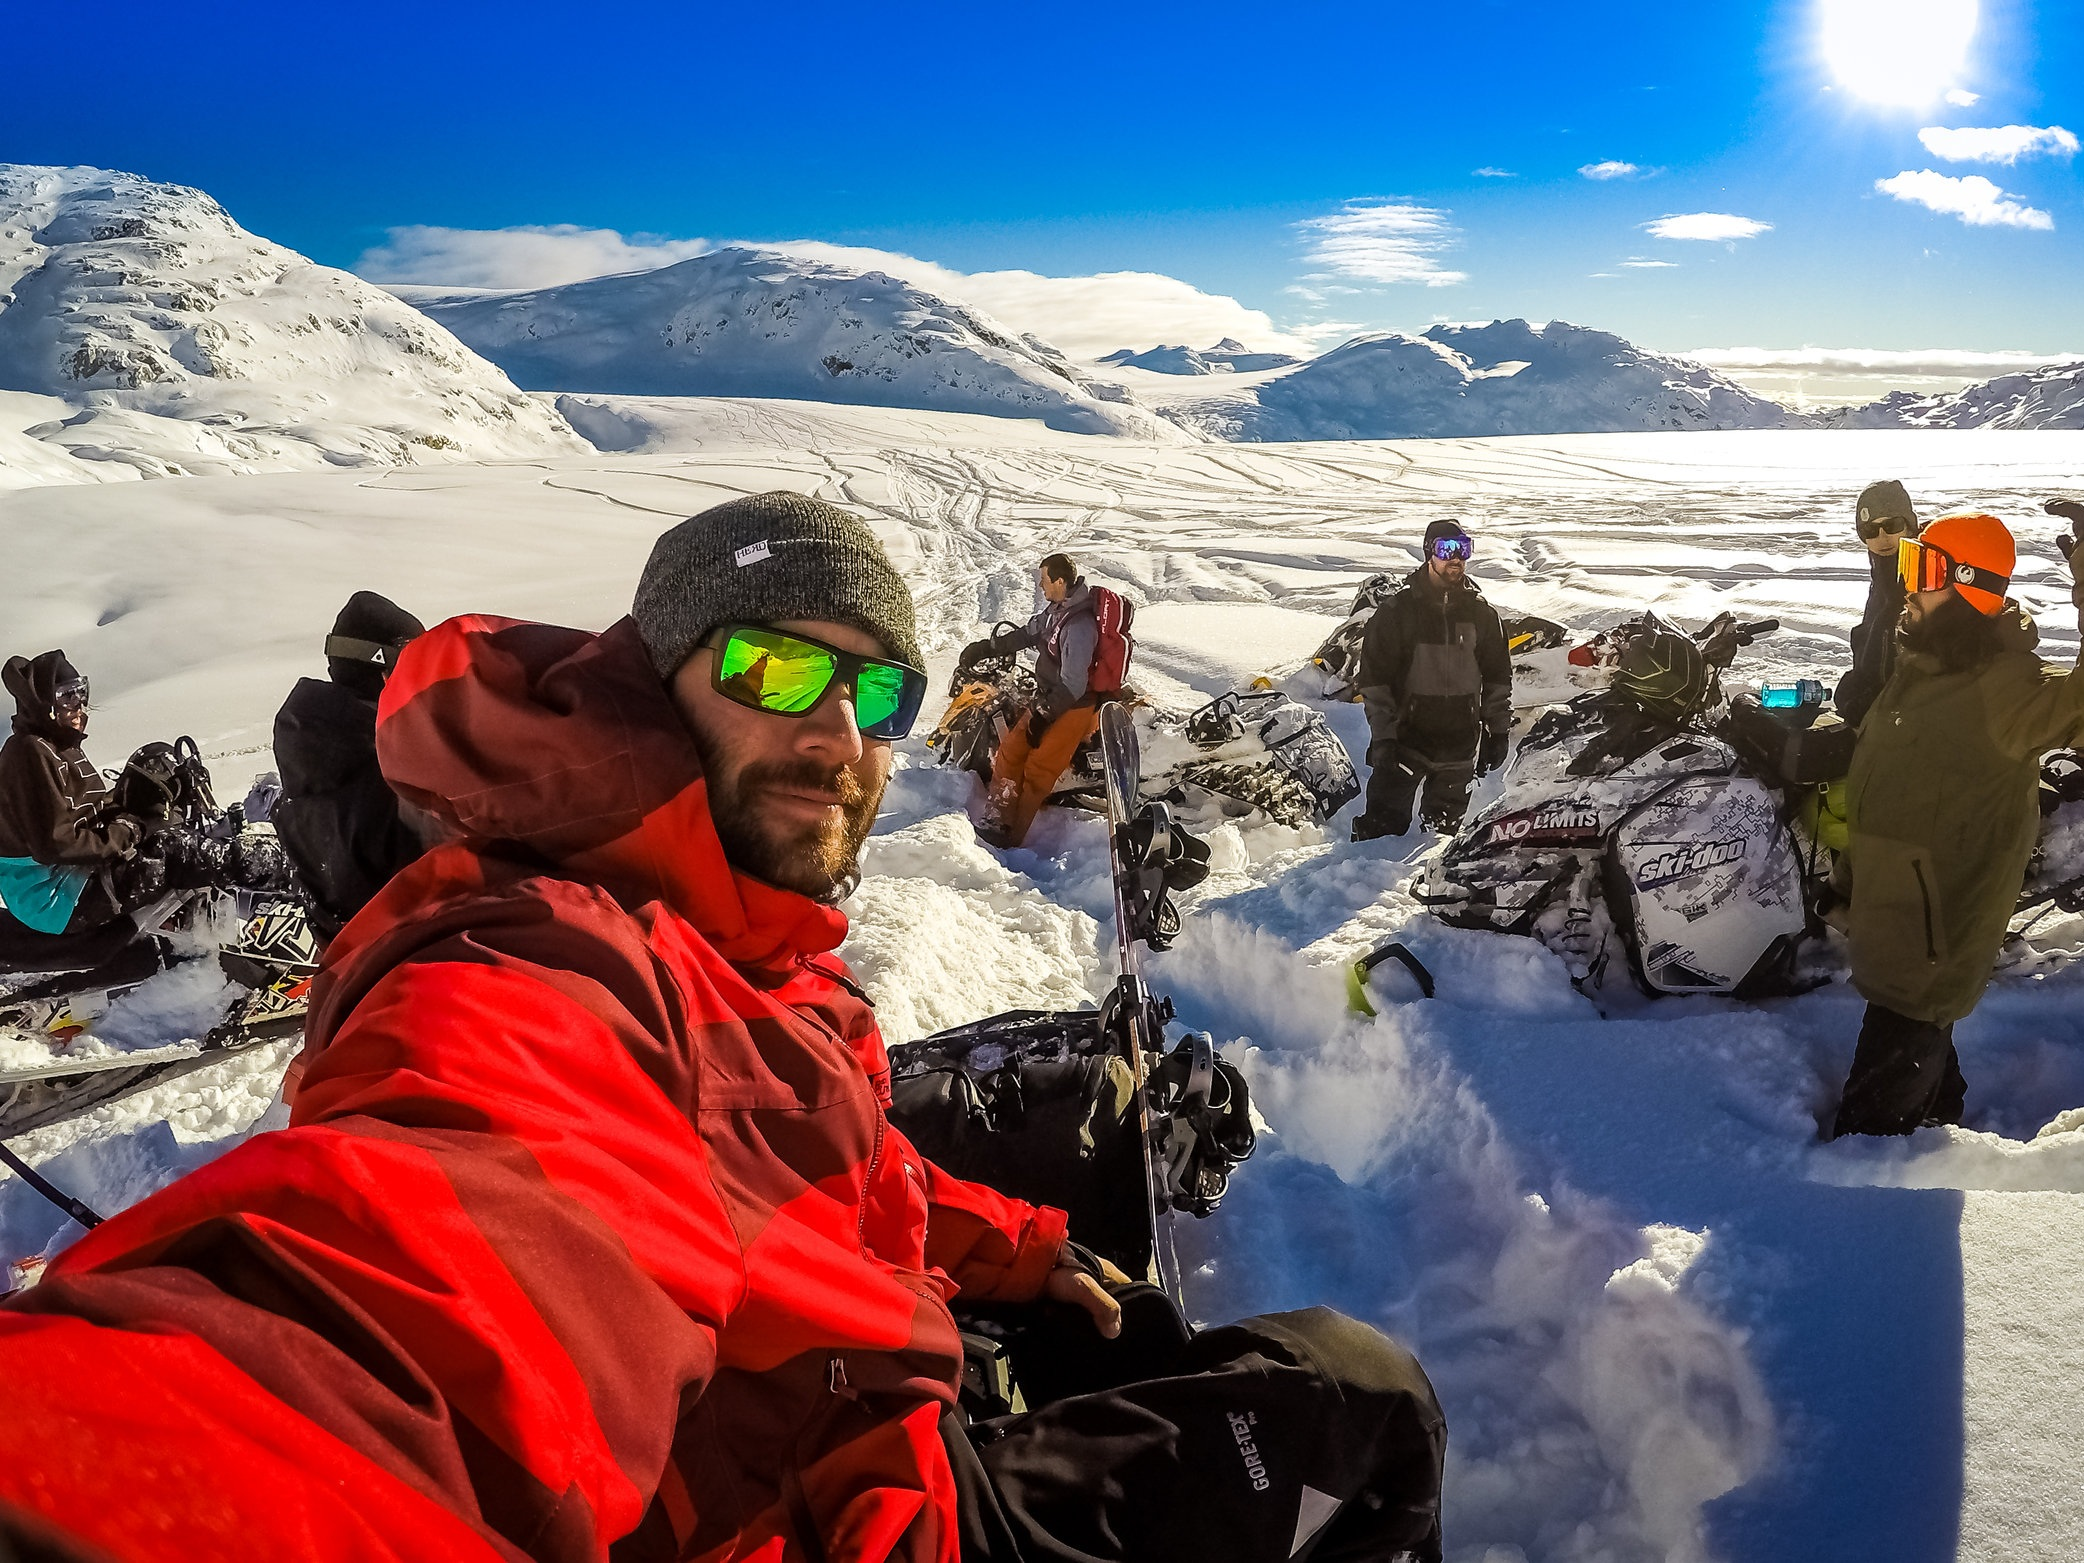 Private Guided & Guide Only Adventures   Private guided tours offer a one-on-one guided experience. Have your own sled but don't know how to get around? Let us show you the way with our guide-only option.